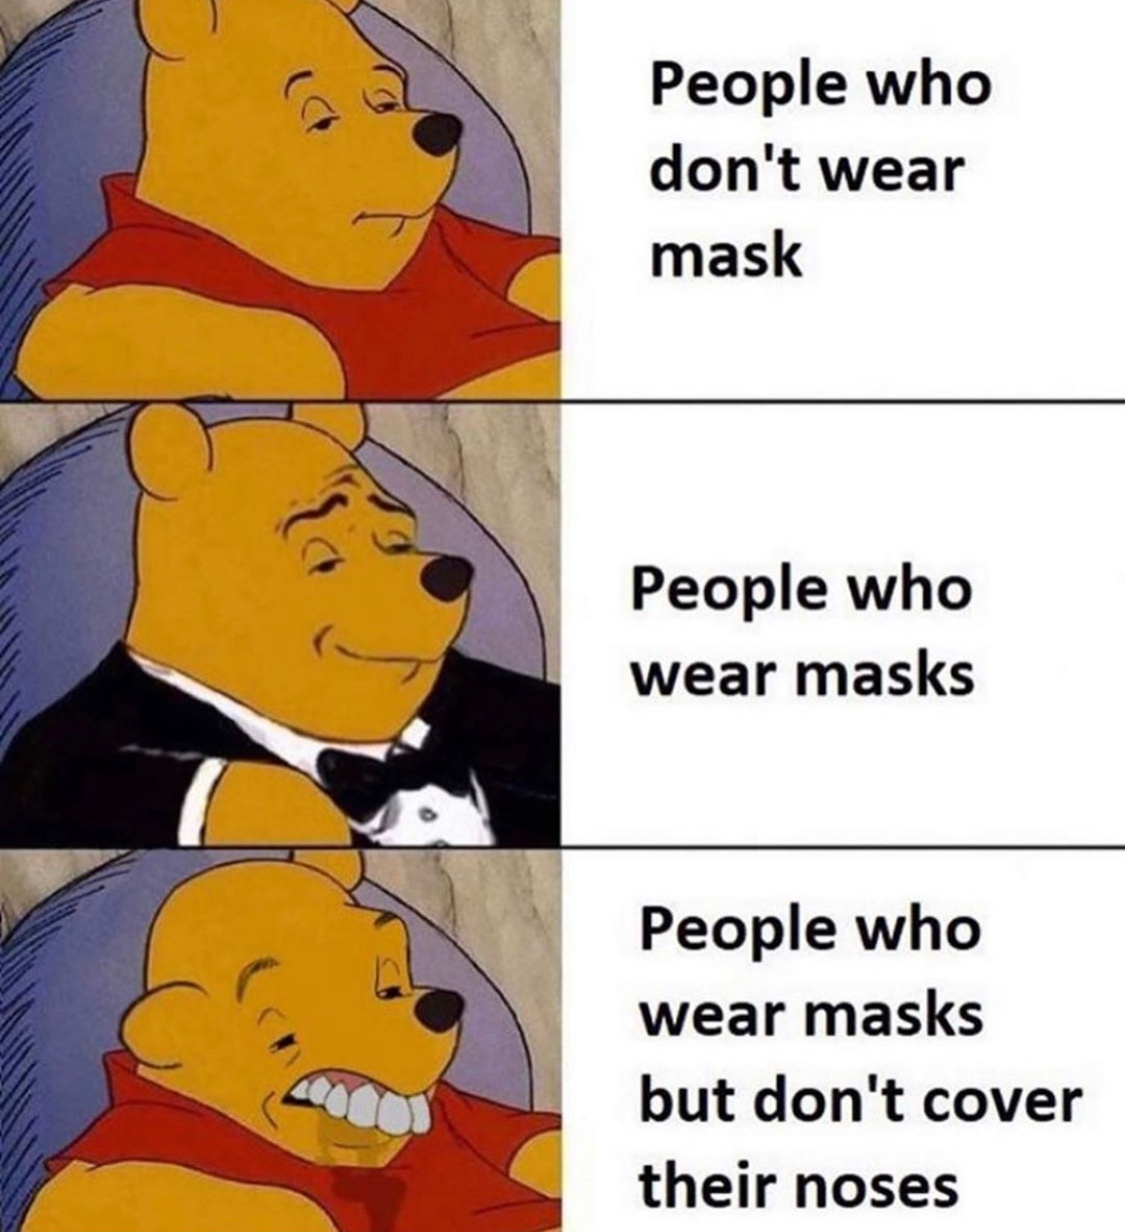 those masks are hard to breathe with - meme